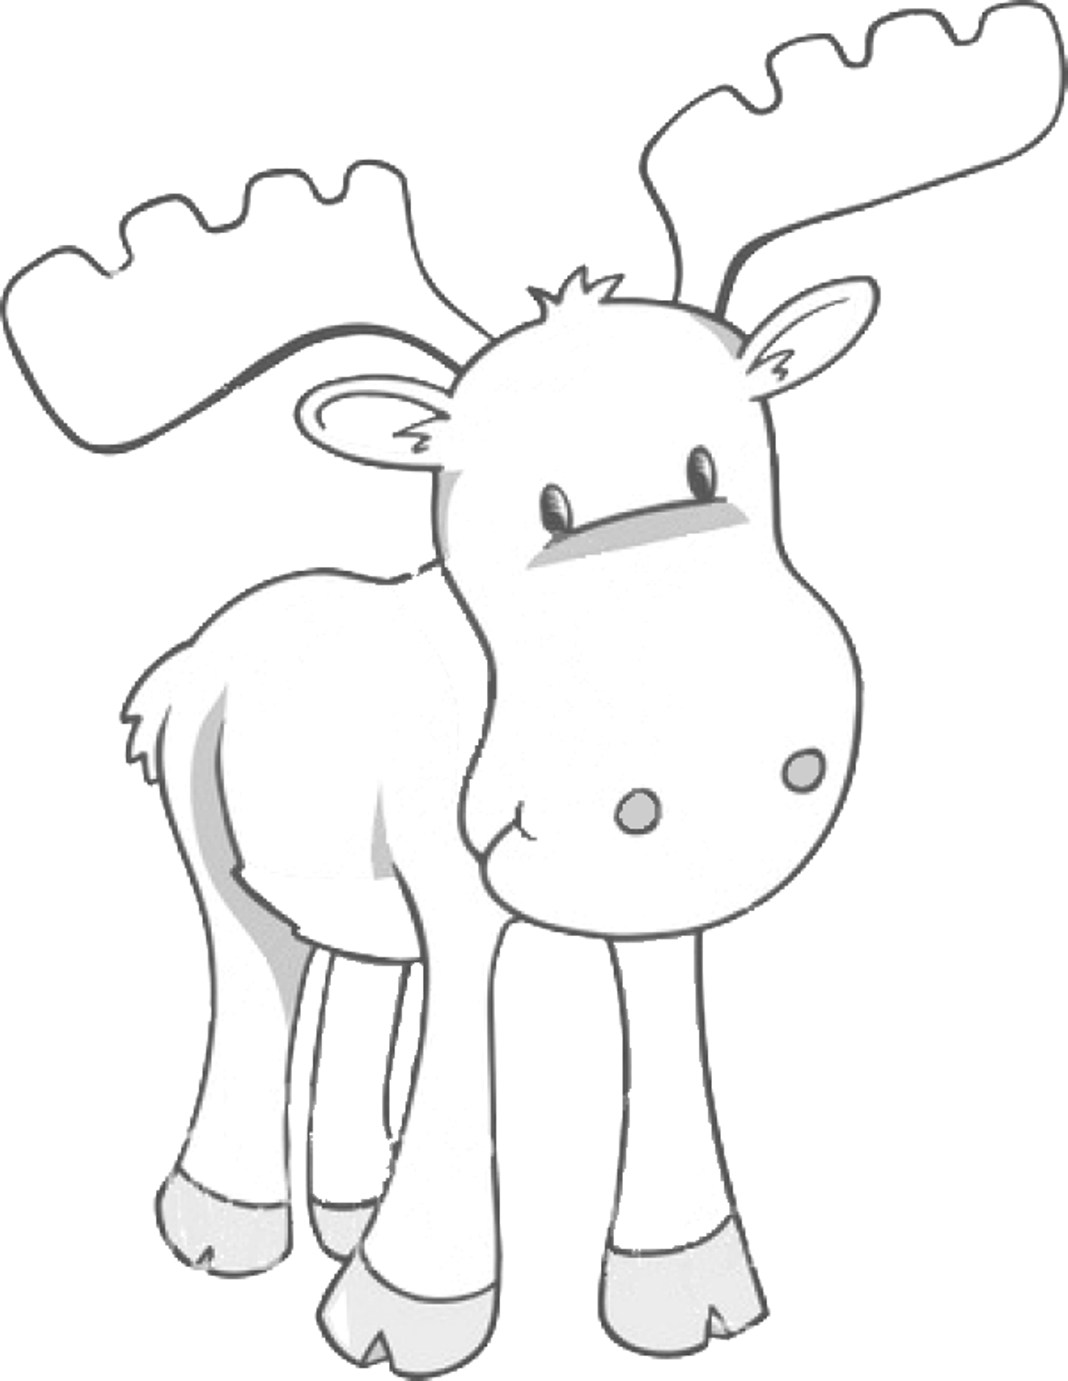 16 Moose Coloring Pages